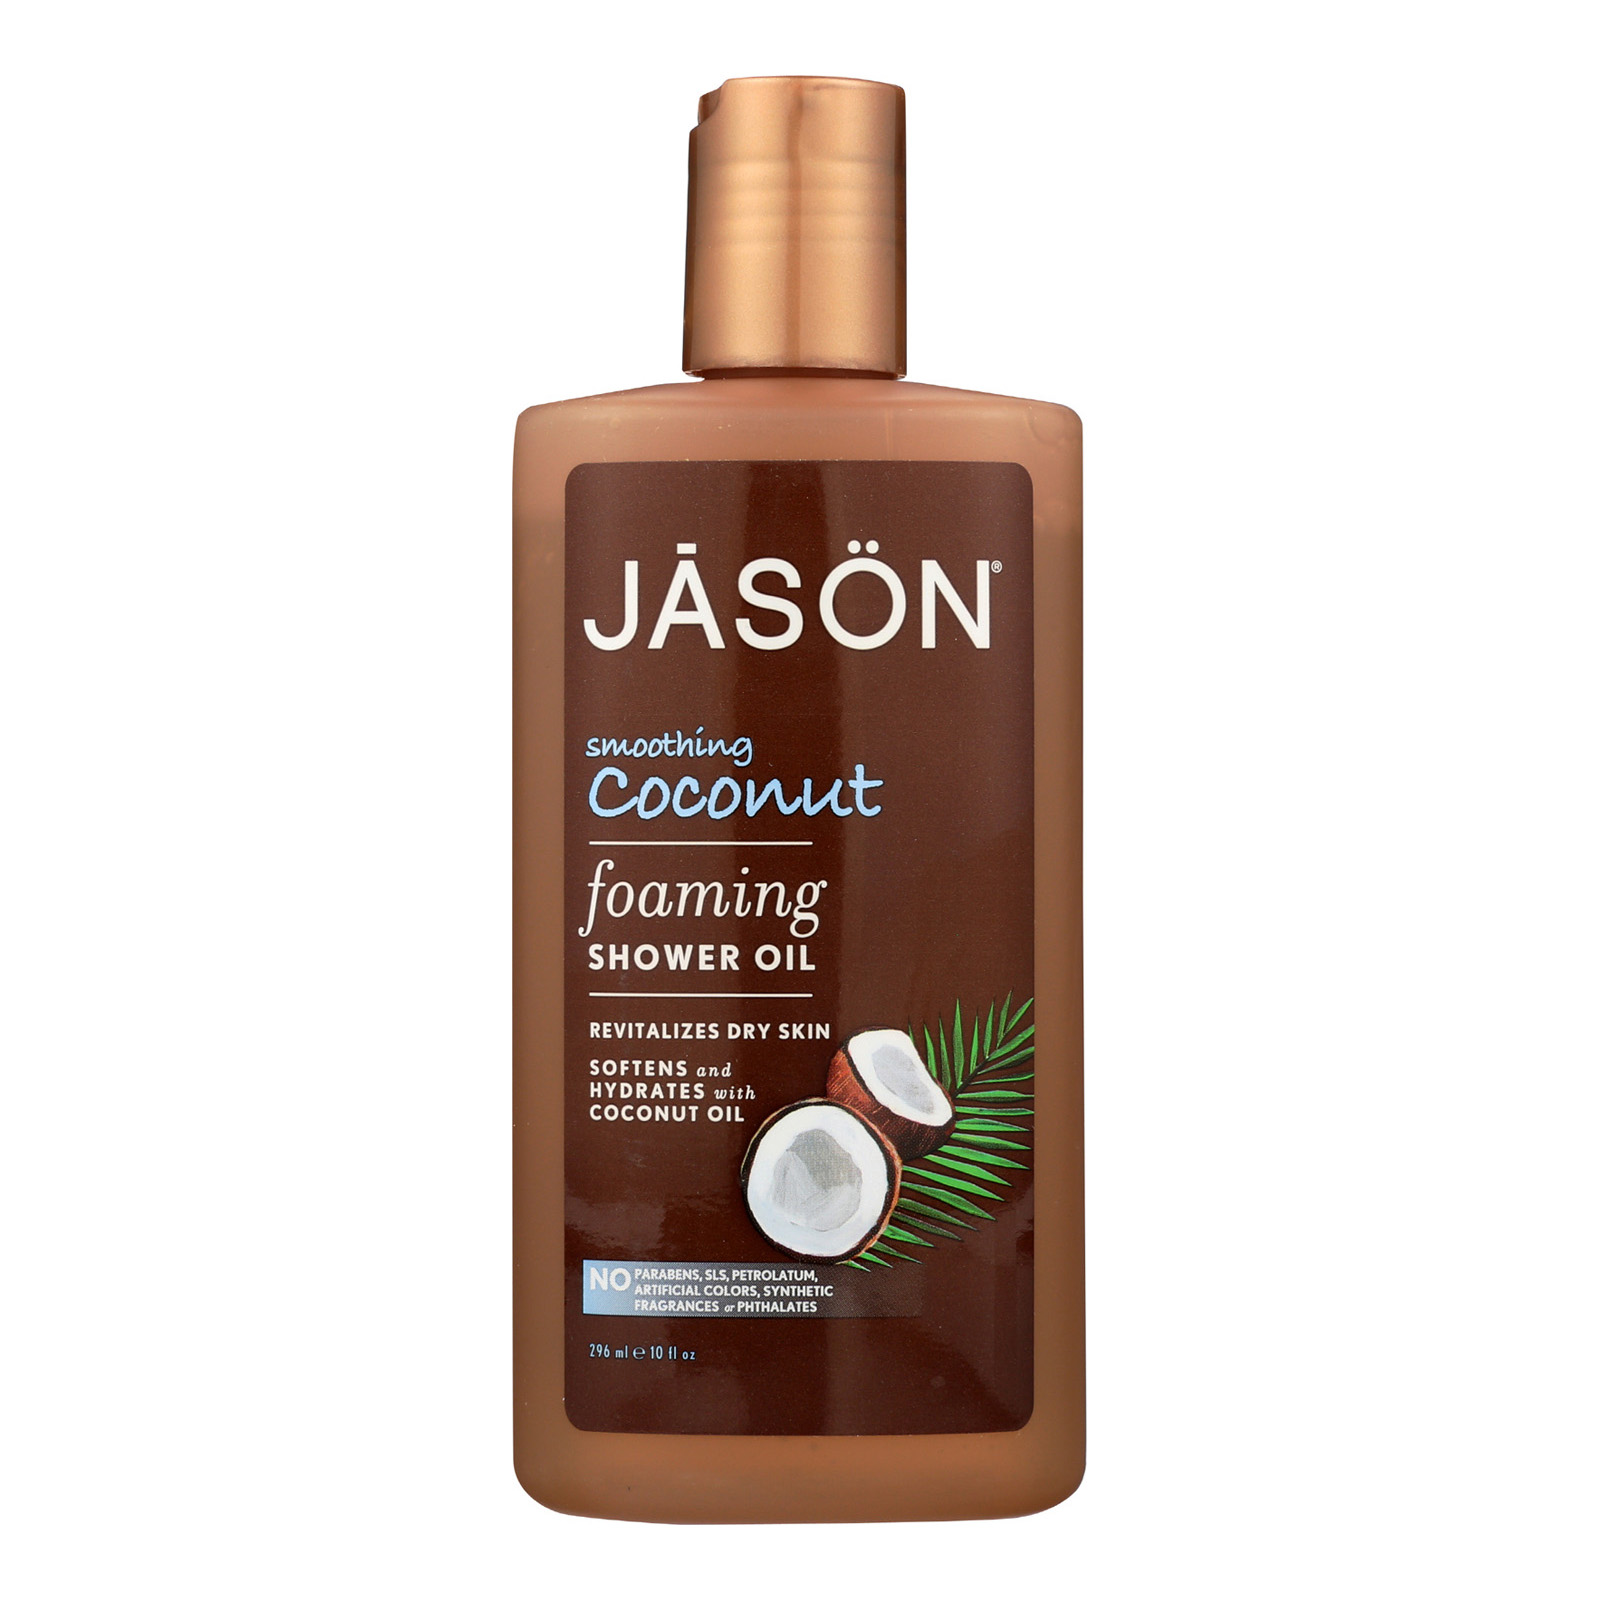 Jason Natural Products Jason Natural Coconut Foaming Shower Oil - Smoothing Coconut - 10 Fl Oz.